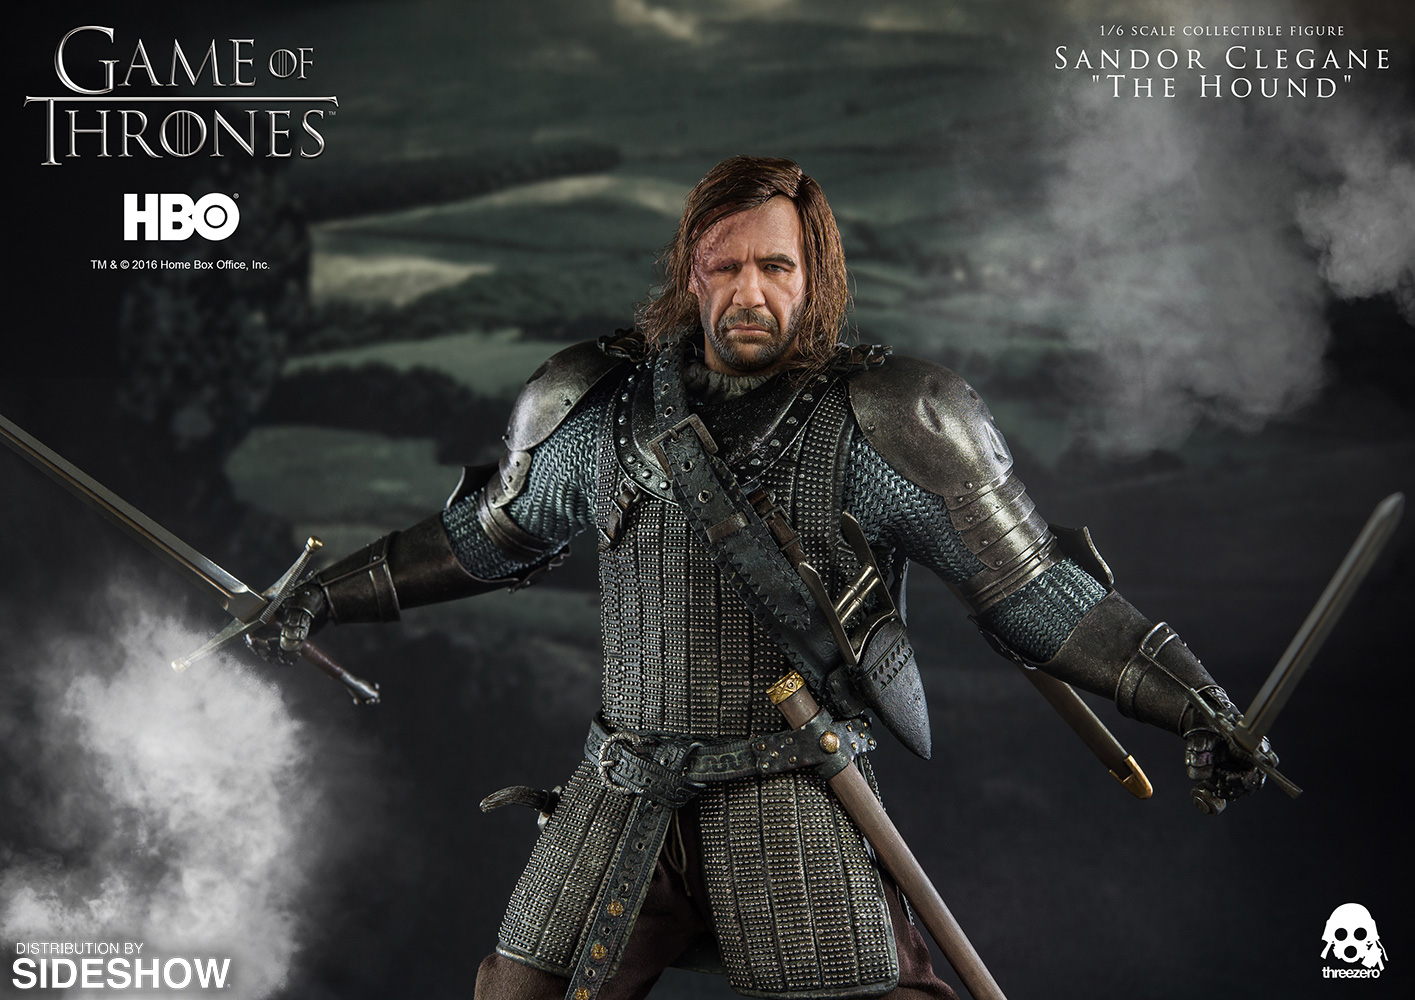 """Game of Thrones Sandor Clegane """"The Hound"""" Sixth Scale Figure"""